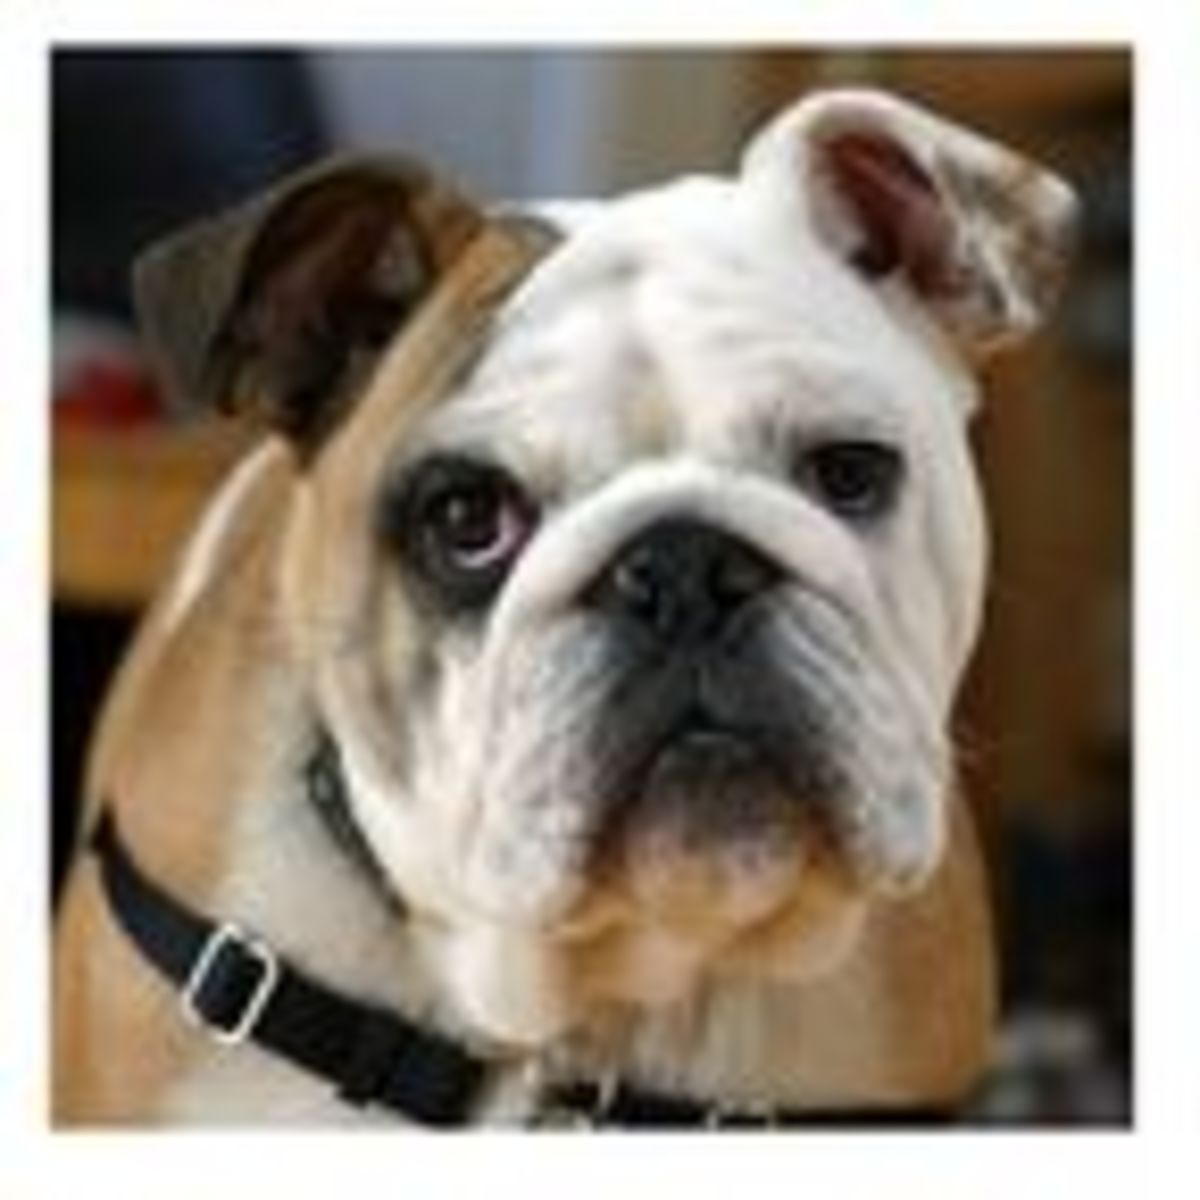 Is the English Bulldog a Doomed Breed? | Psychology Today